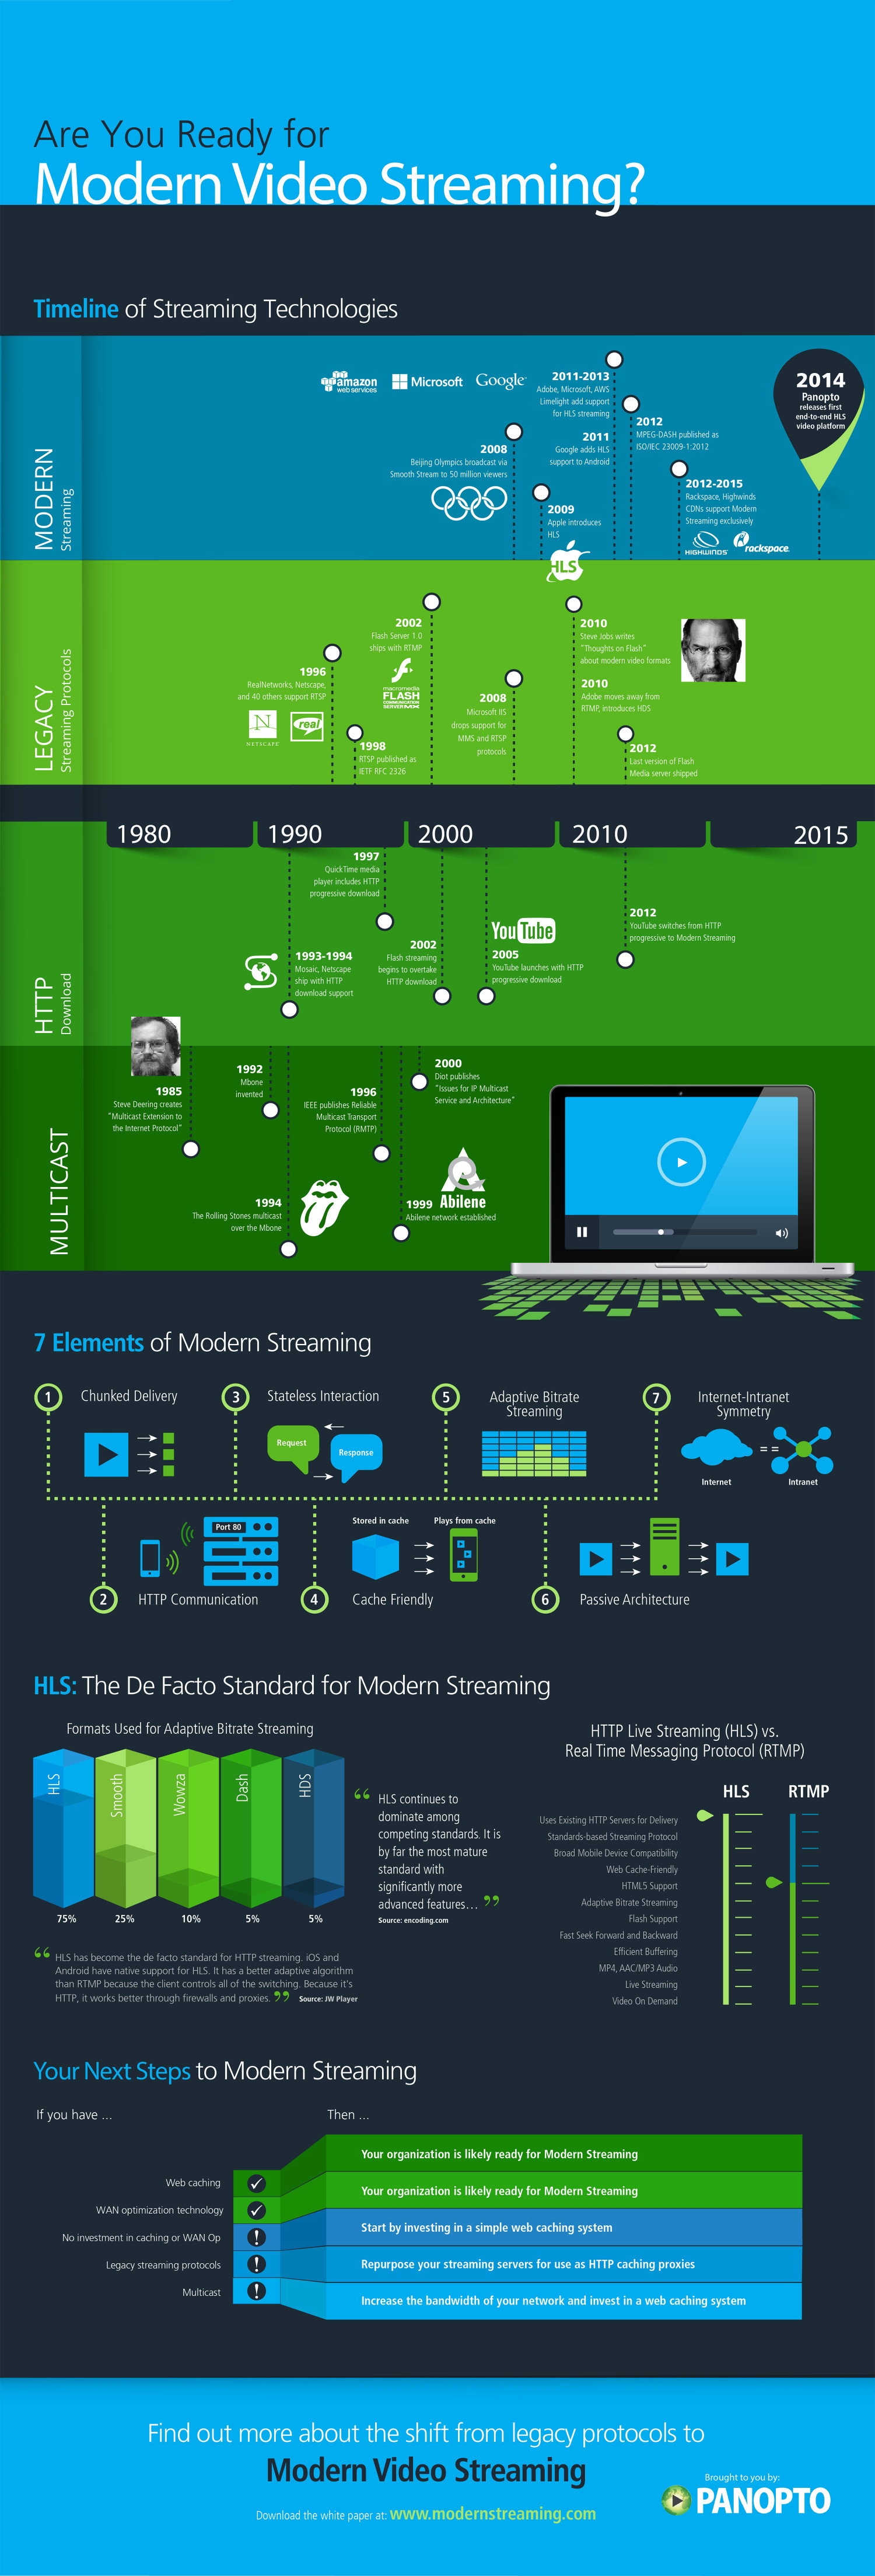 Are You Ready for Modern Video Streaming? Infographic